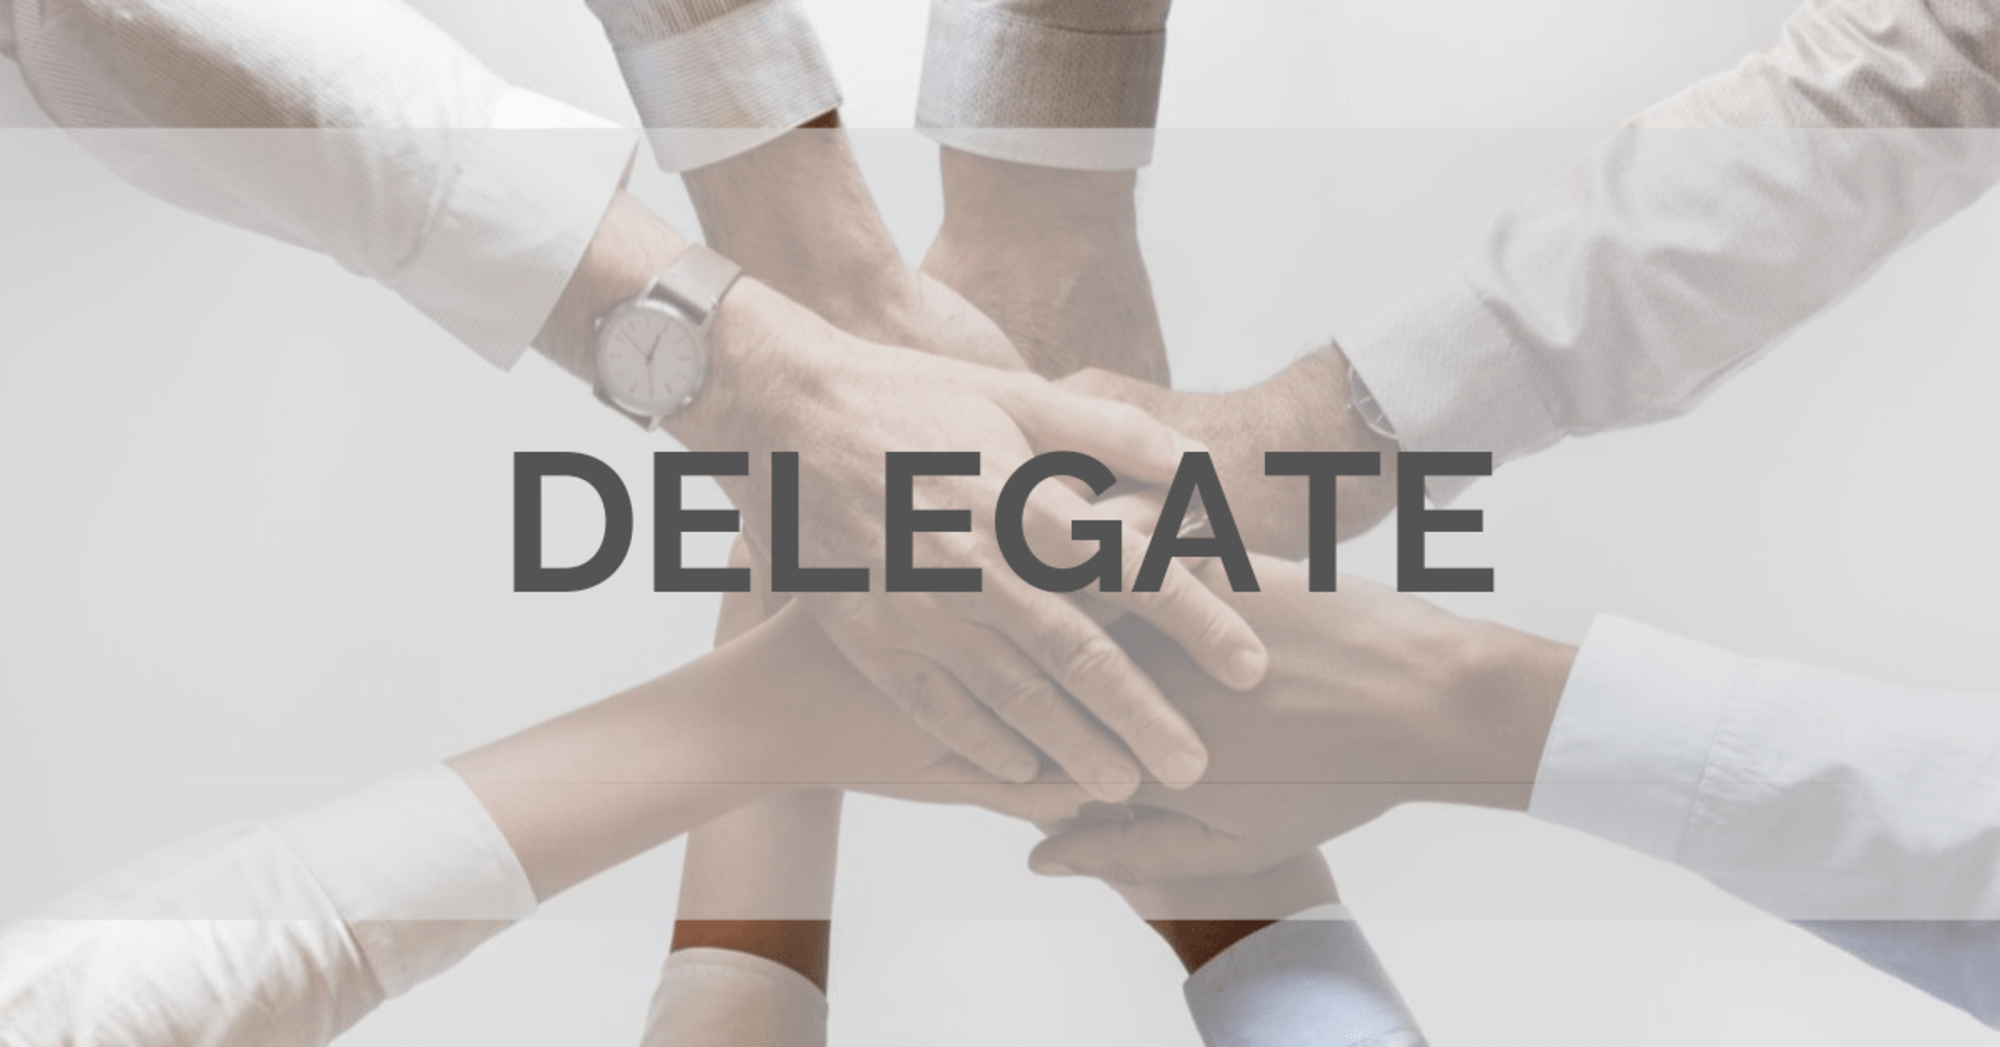 Delegation Issues in Software Development